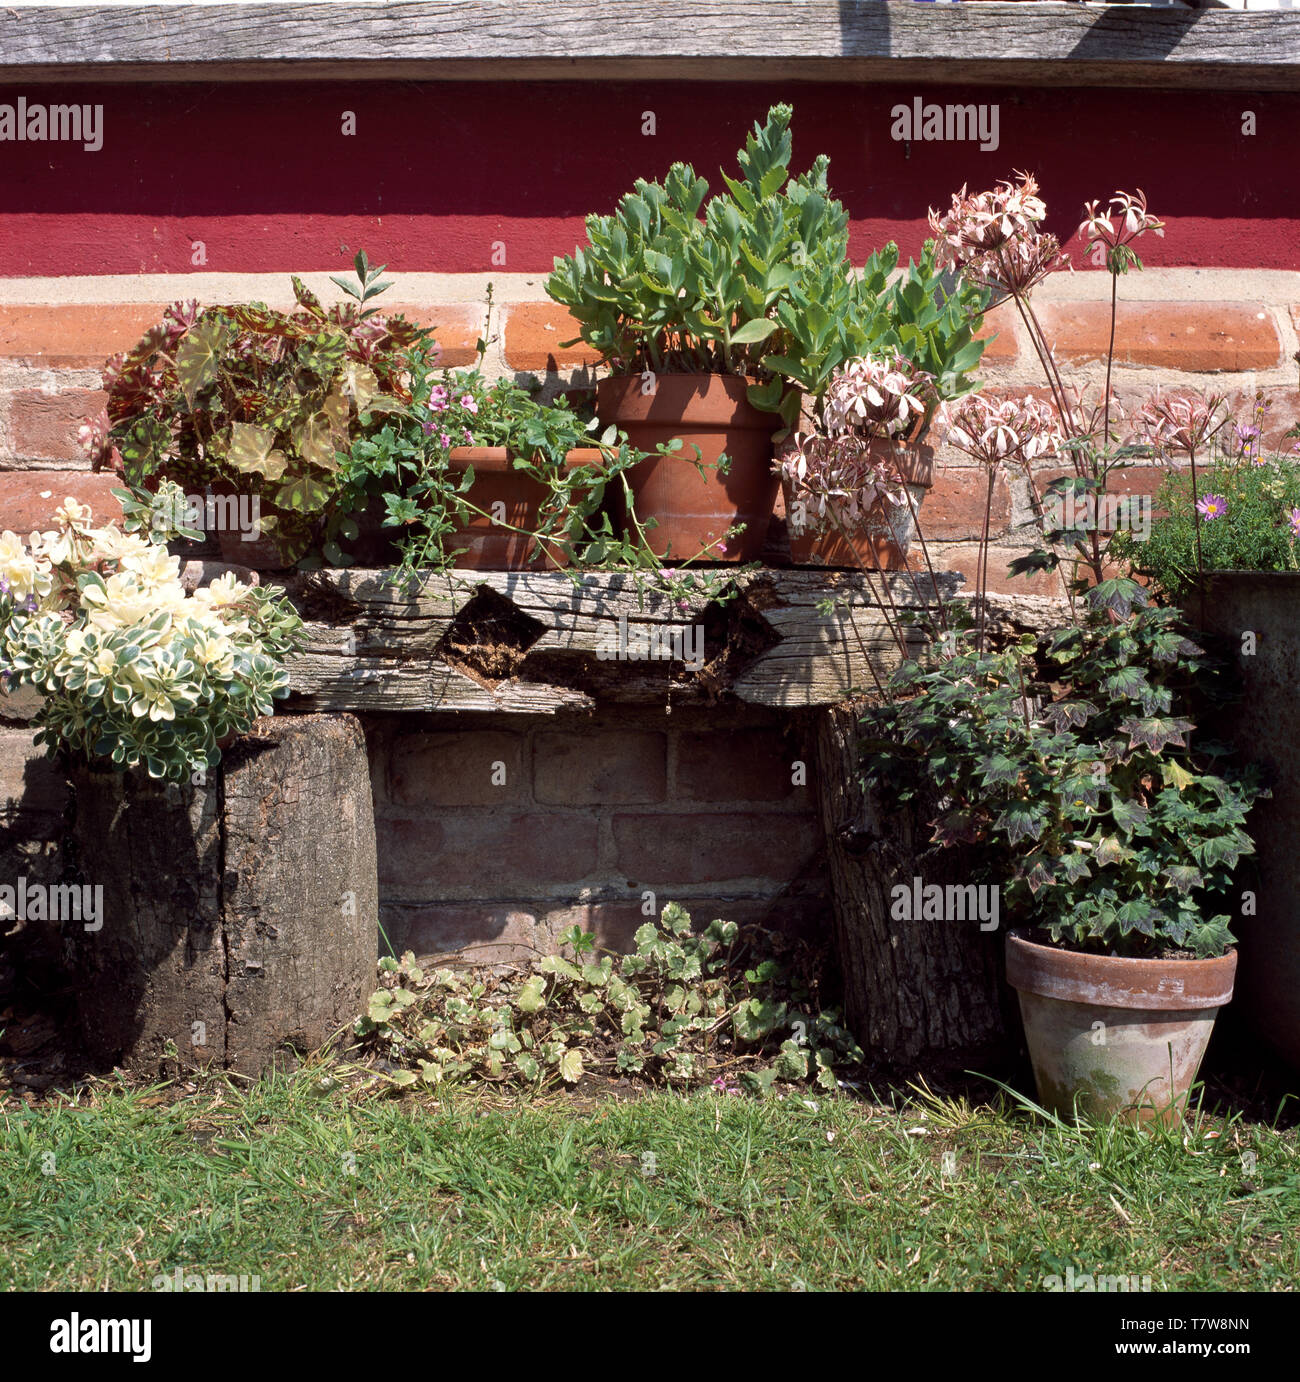 Tremendous Pots Of Geraniums And Succulents On Rustic Wooden Bench Caraccident5 Cool Chair Designs And Ideas Caraccident5Info